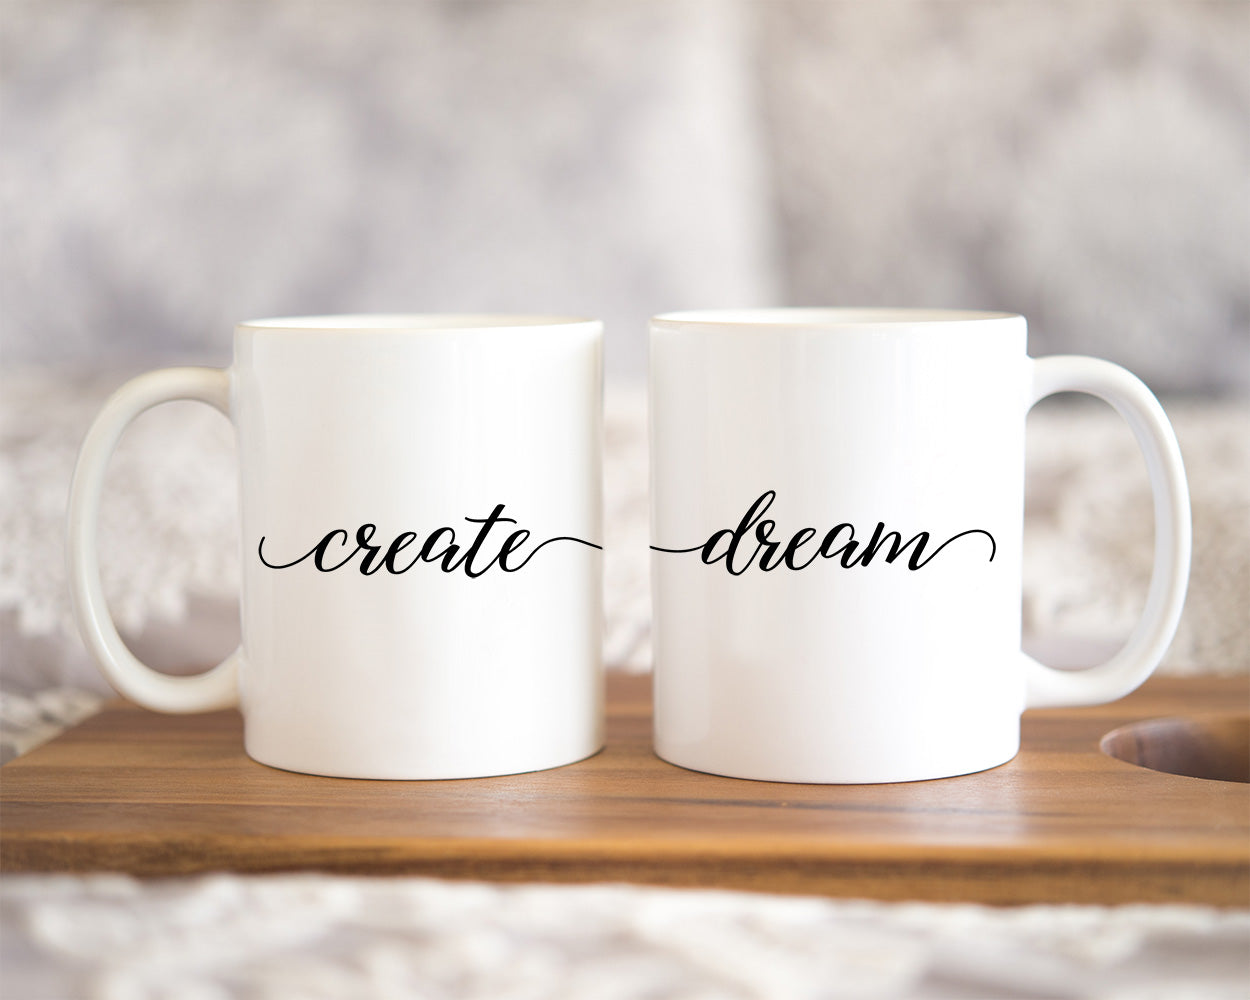 This sweet mug is the perfect reminder for girl bosses, artists, or creative spirits to dream, imagine, and let the creative spirit flow.